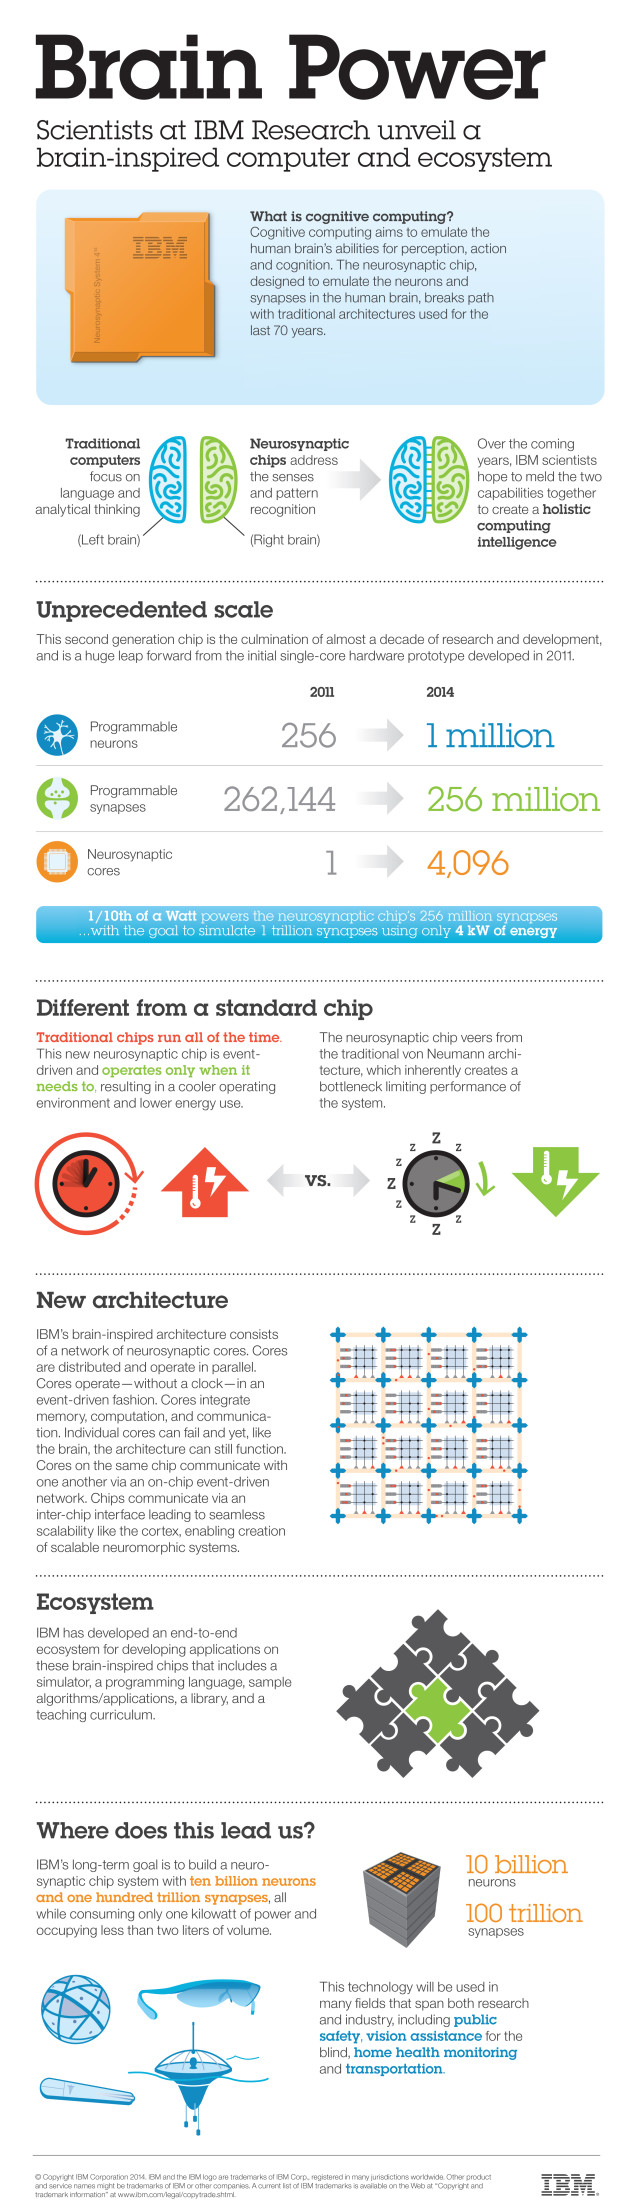 (Infographic courtesy of IBM.)